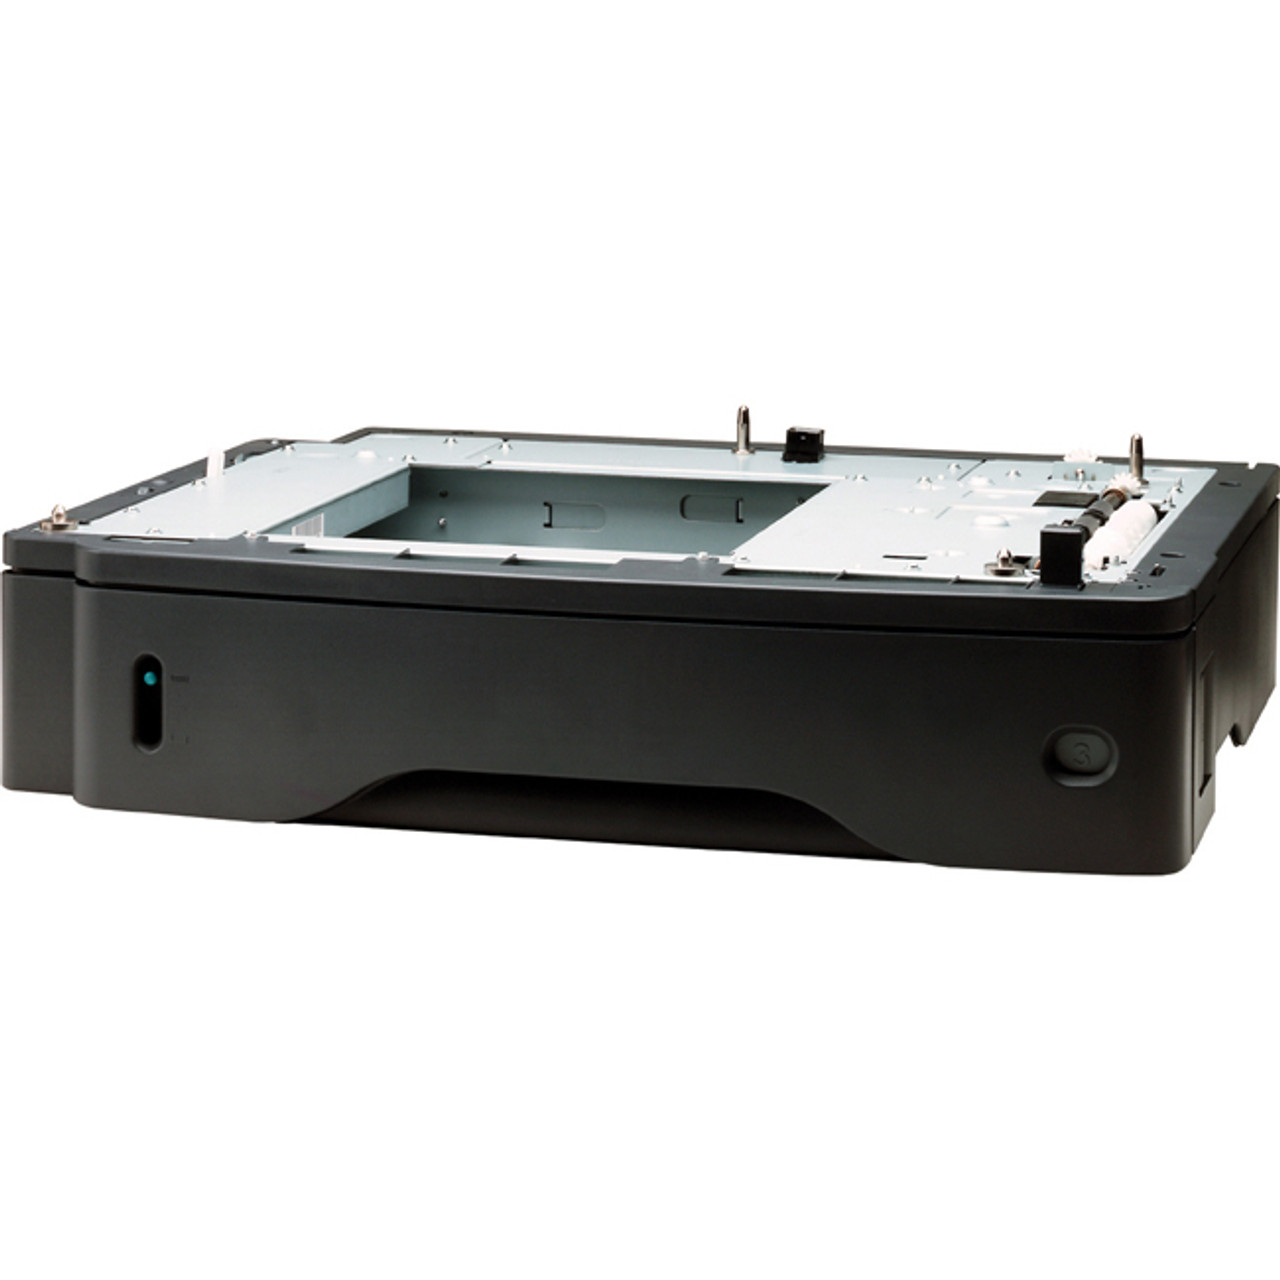 500 Sheet Optional Tray for HP 4345 M4345